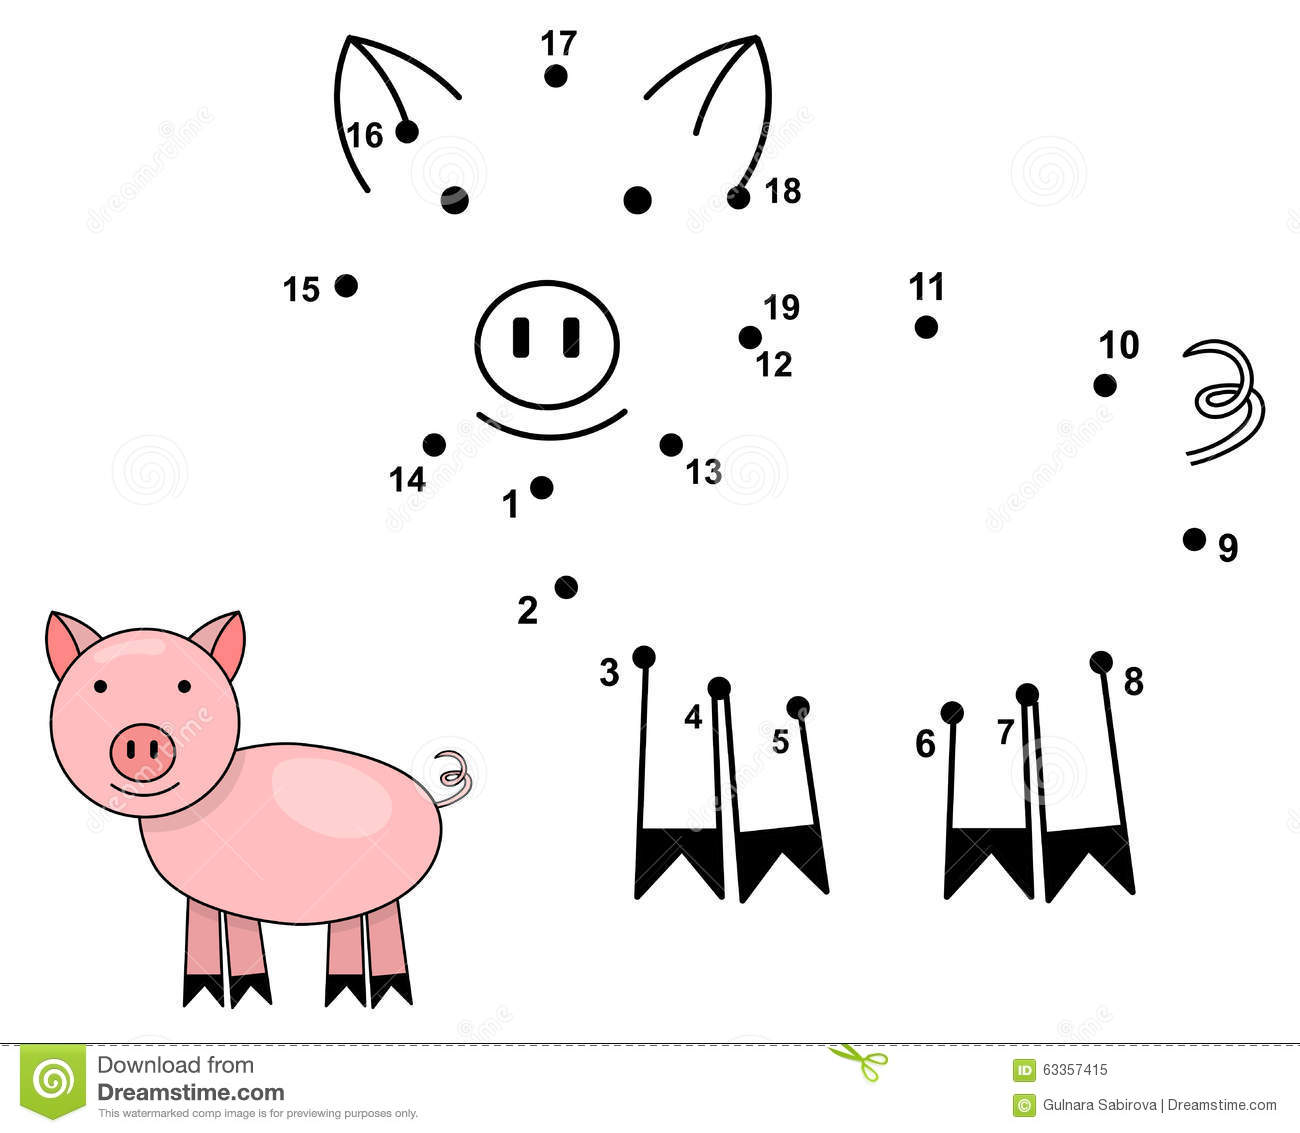 Connect The Dots To Draw The Cute Pig Educational Numbers